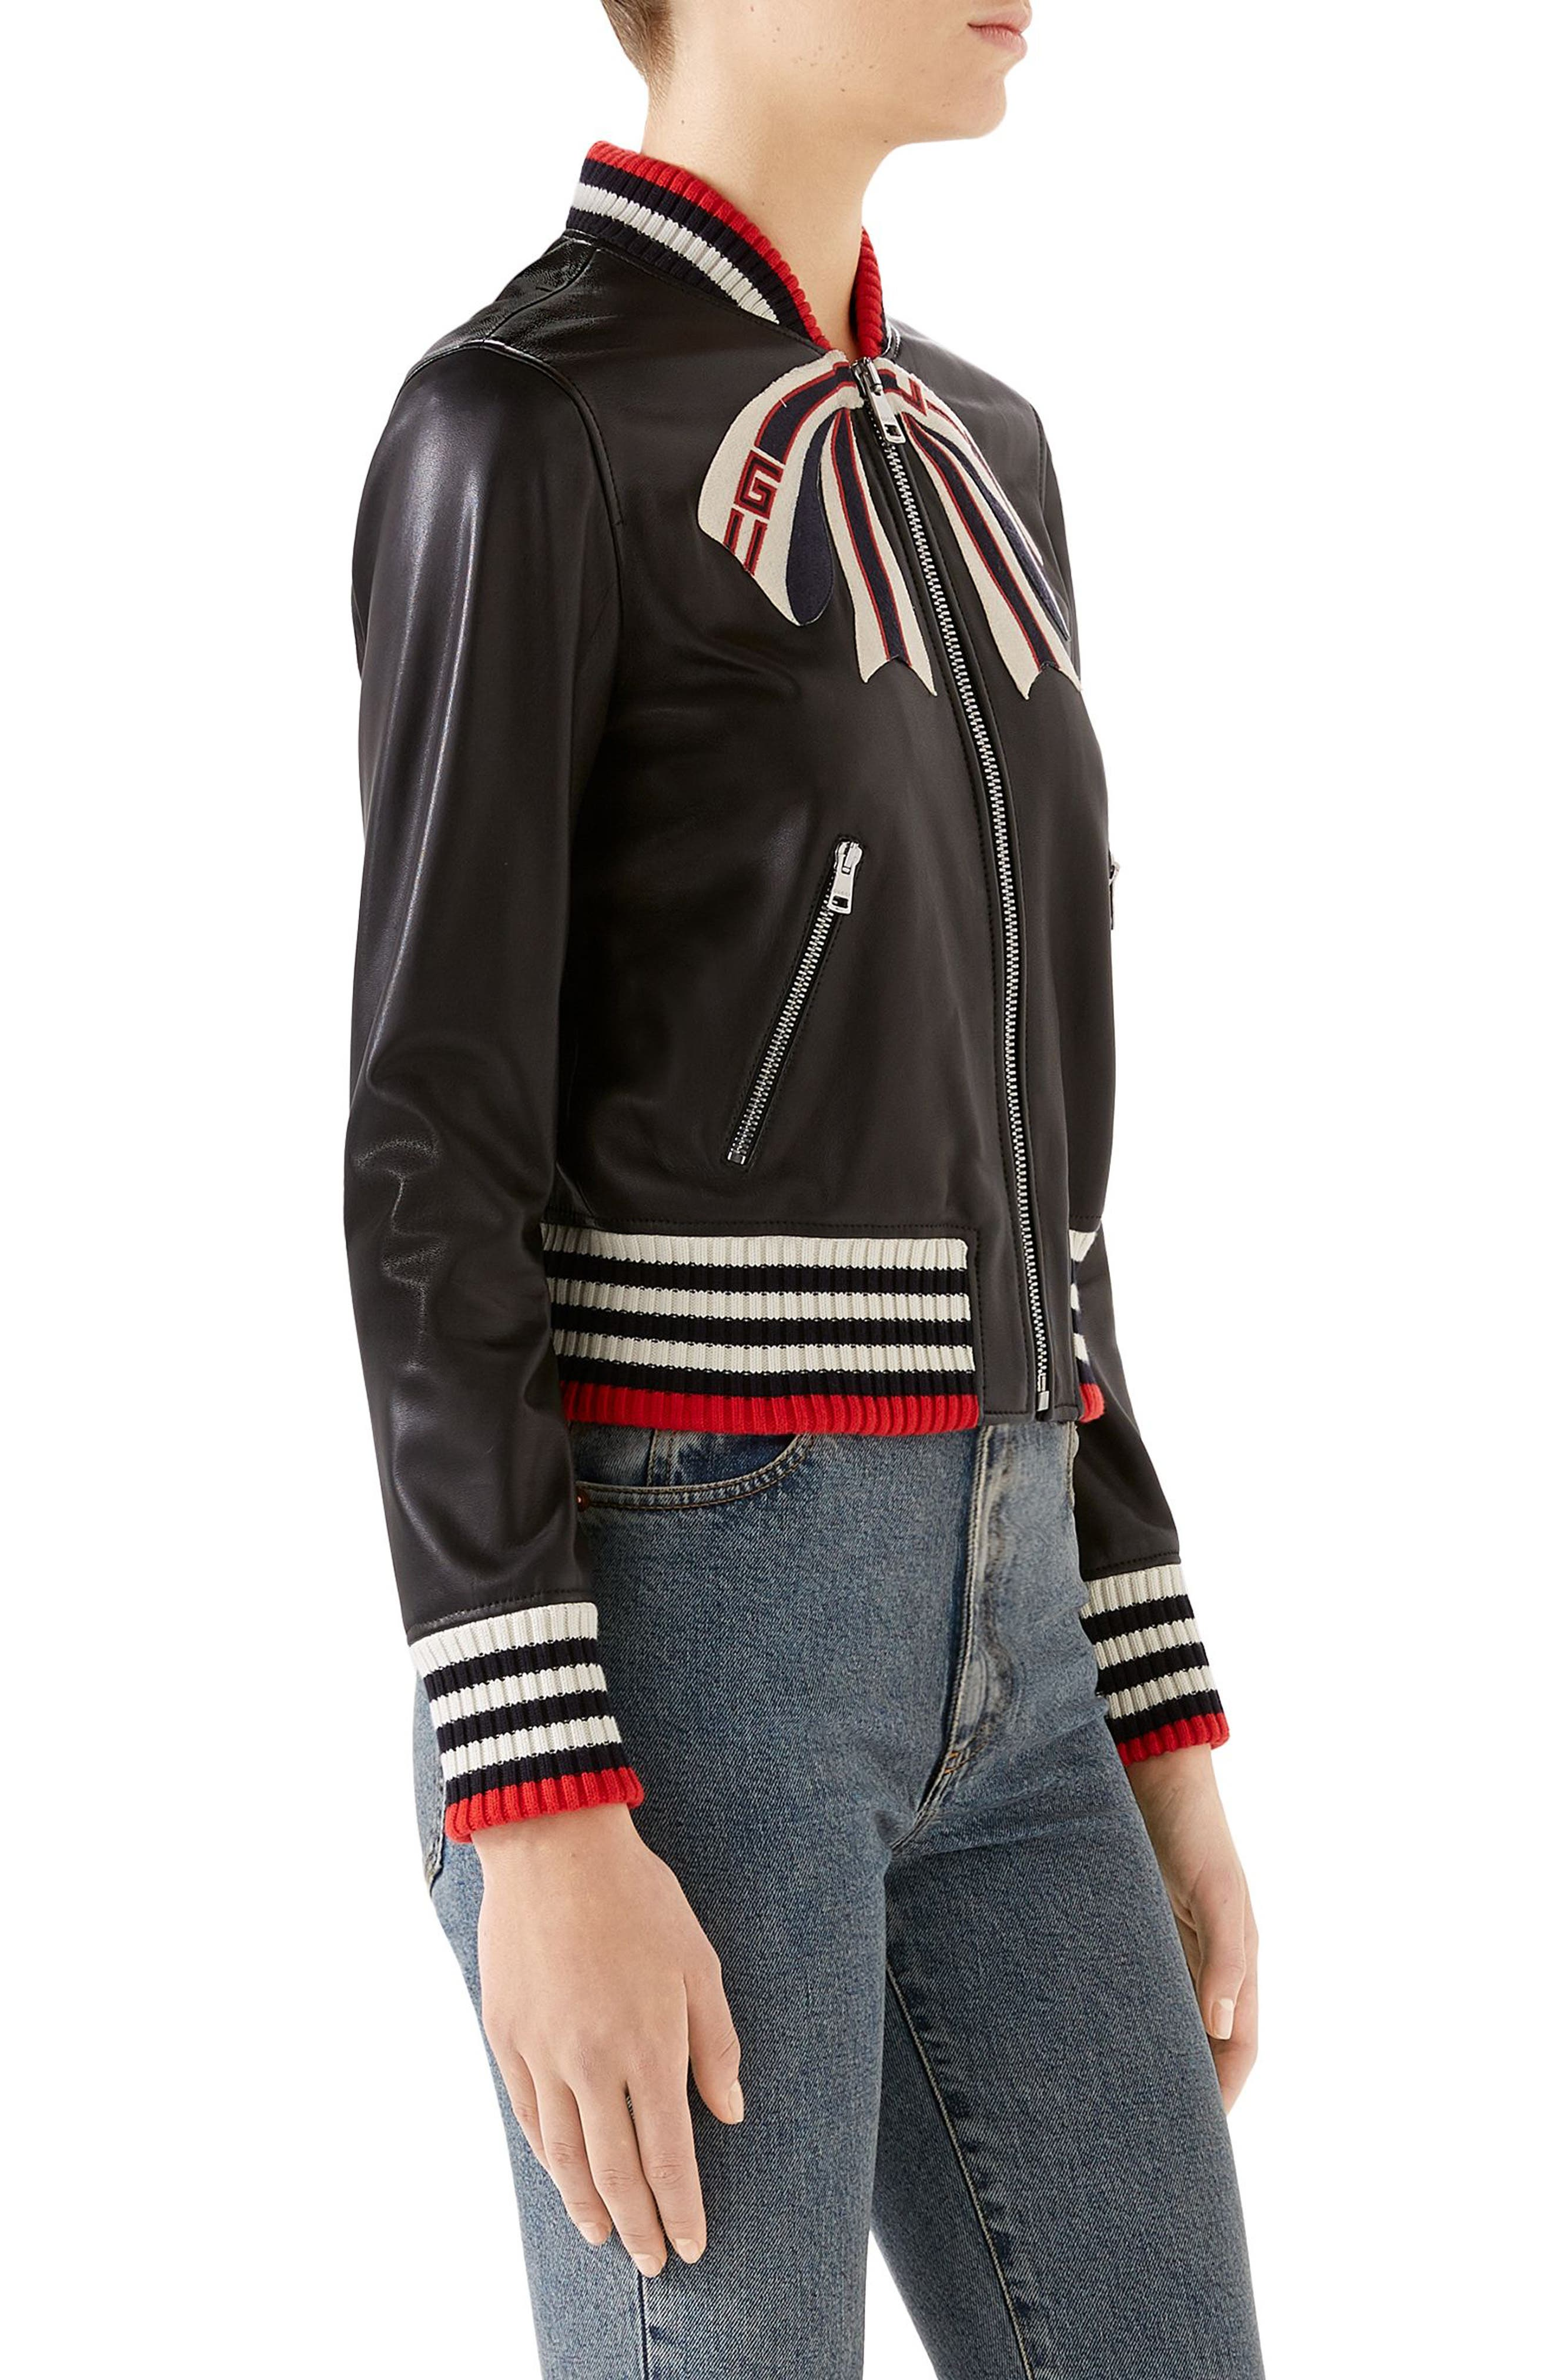 GUCCI,                             Bow Leather Bomber Jacket,                             Alternate thumbnail 3, color,                             1082 BLACK/ MULTICOLOR